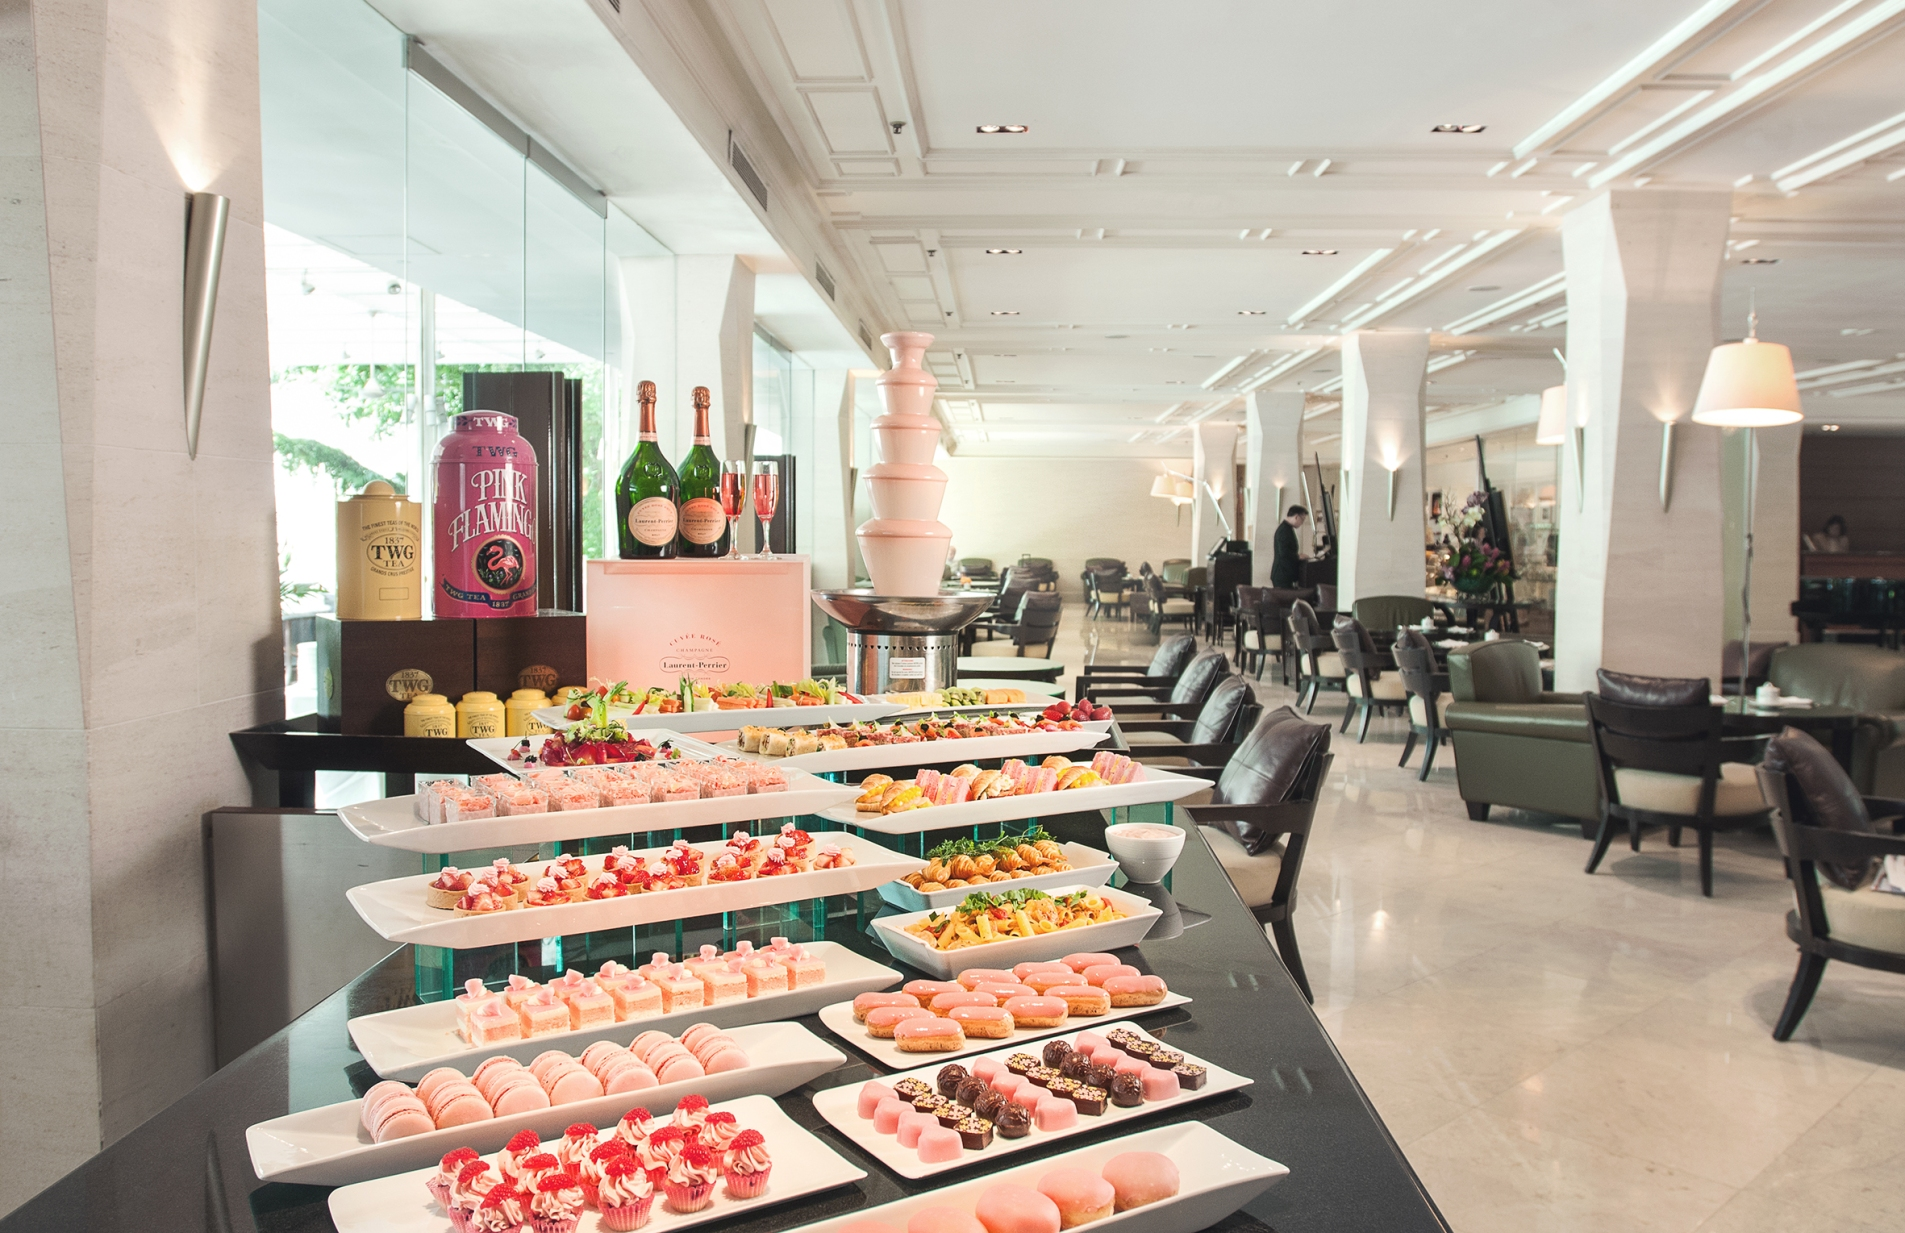 lespresso-english-afternoon-tea-with-pink-treats-1-to-31-october-2016